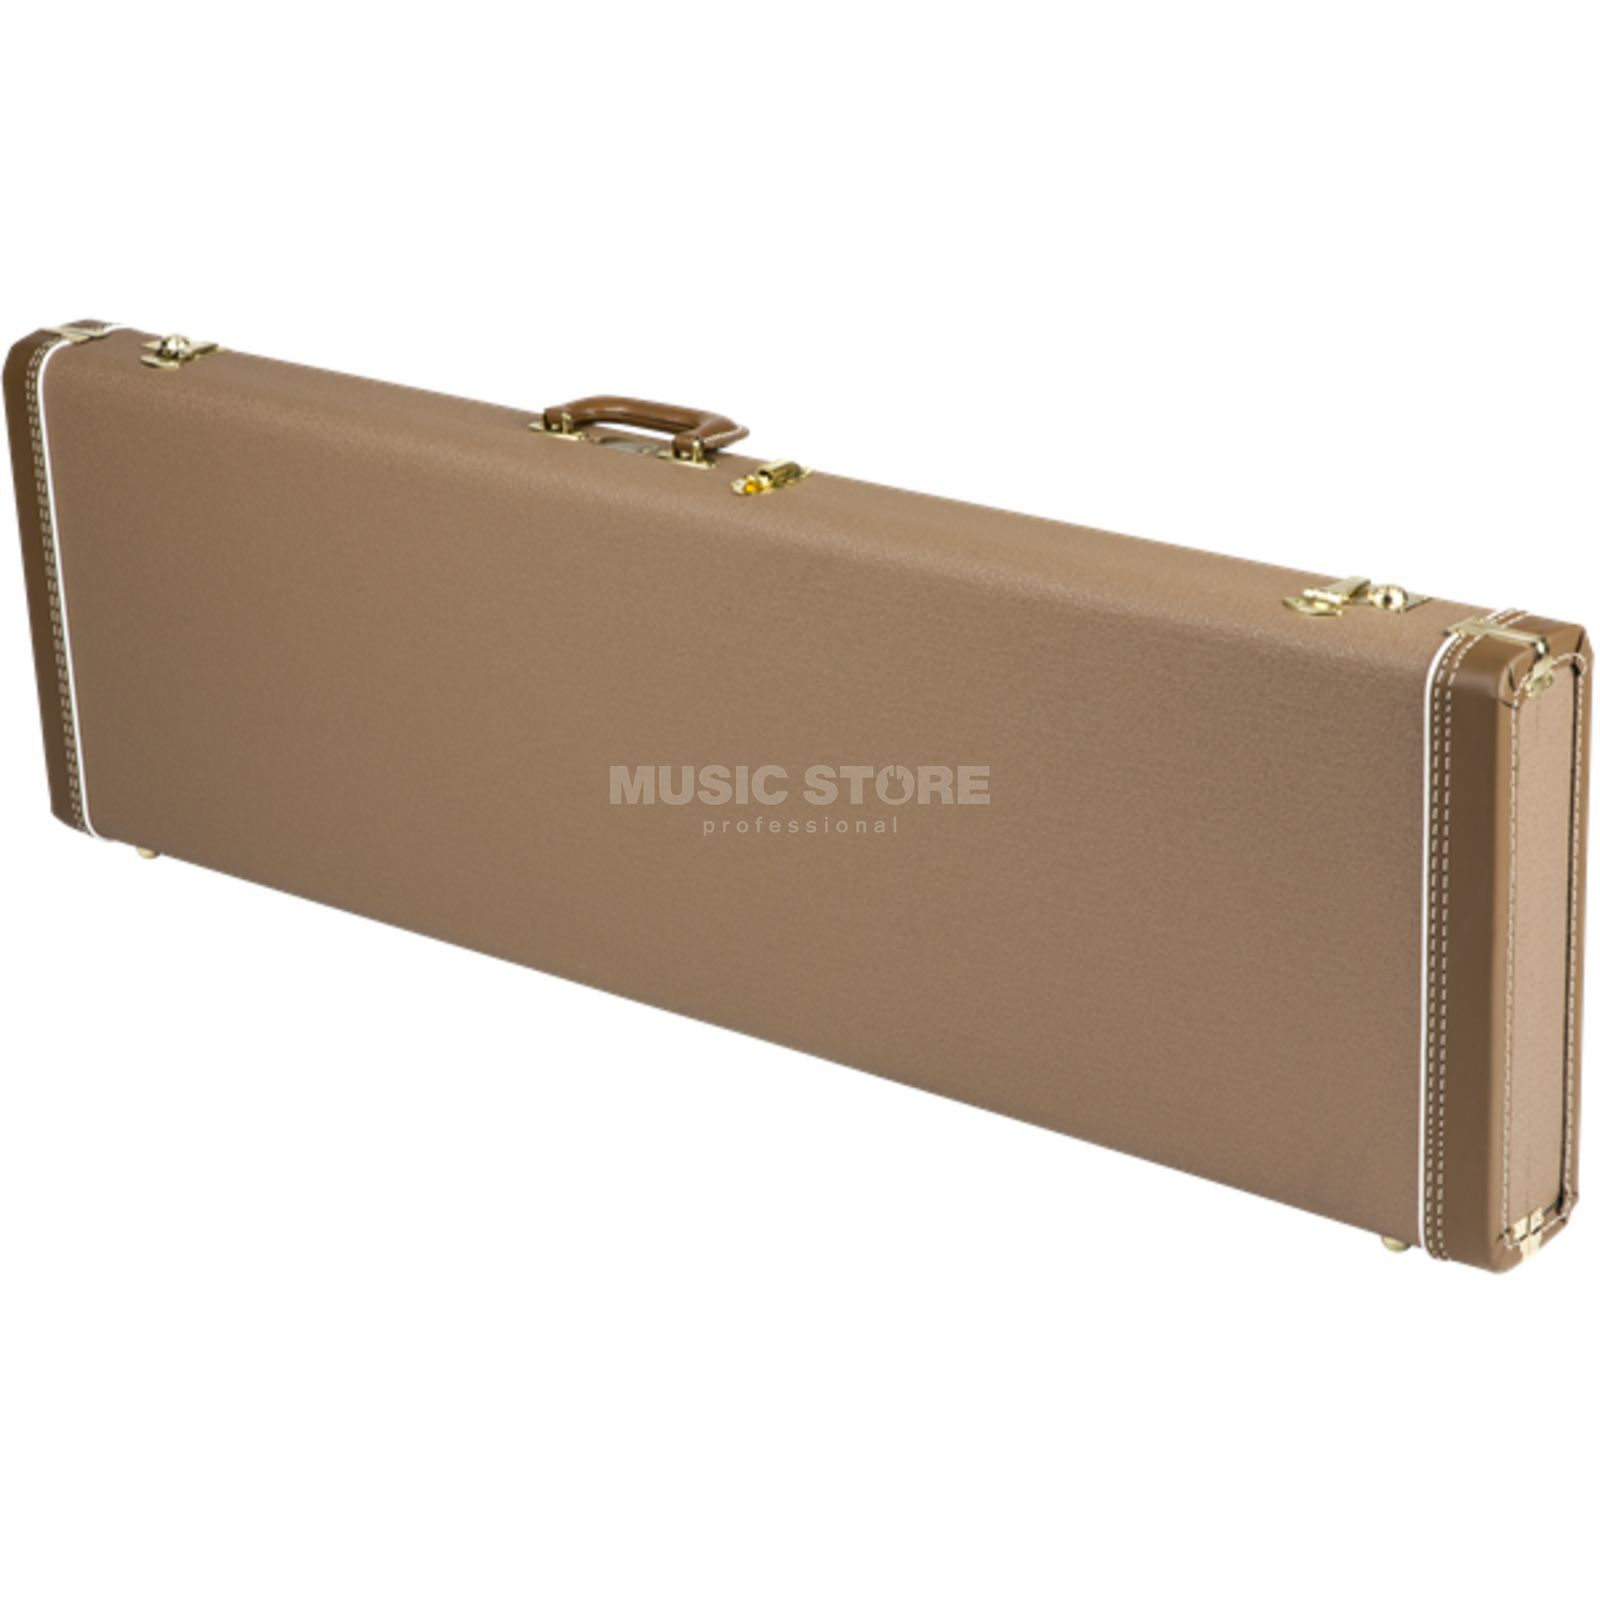 Fender case MultiFit Hardshell P-bas Brown with goud Plush Productafbeelding